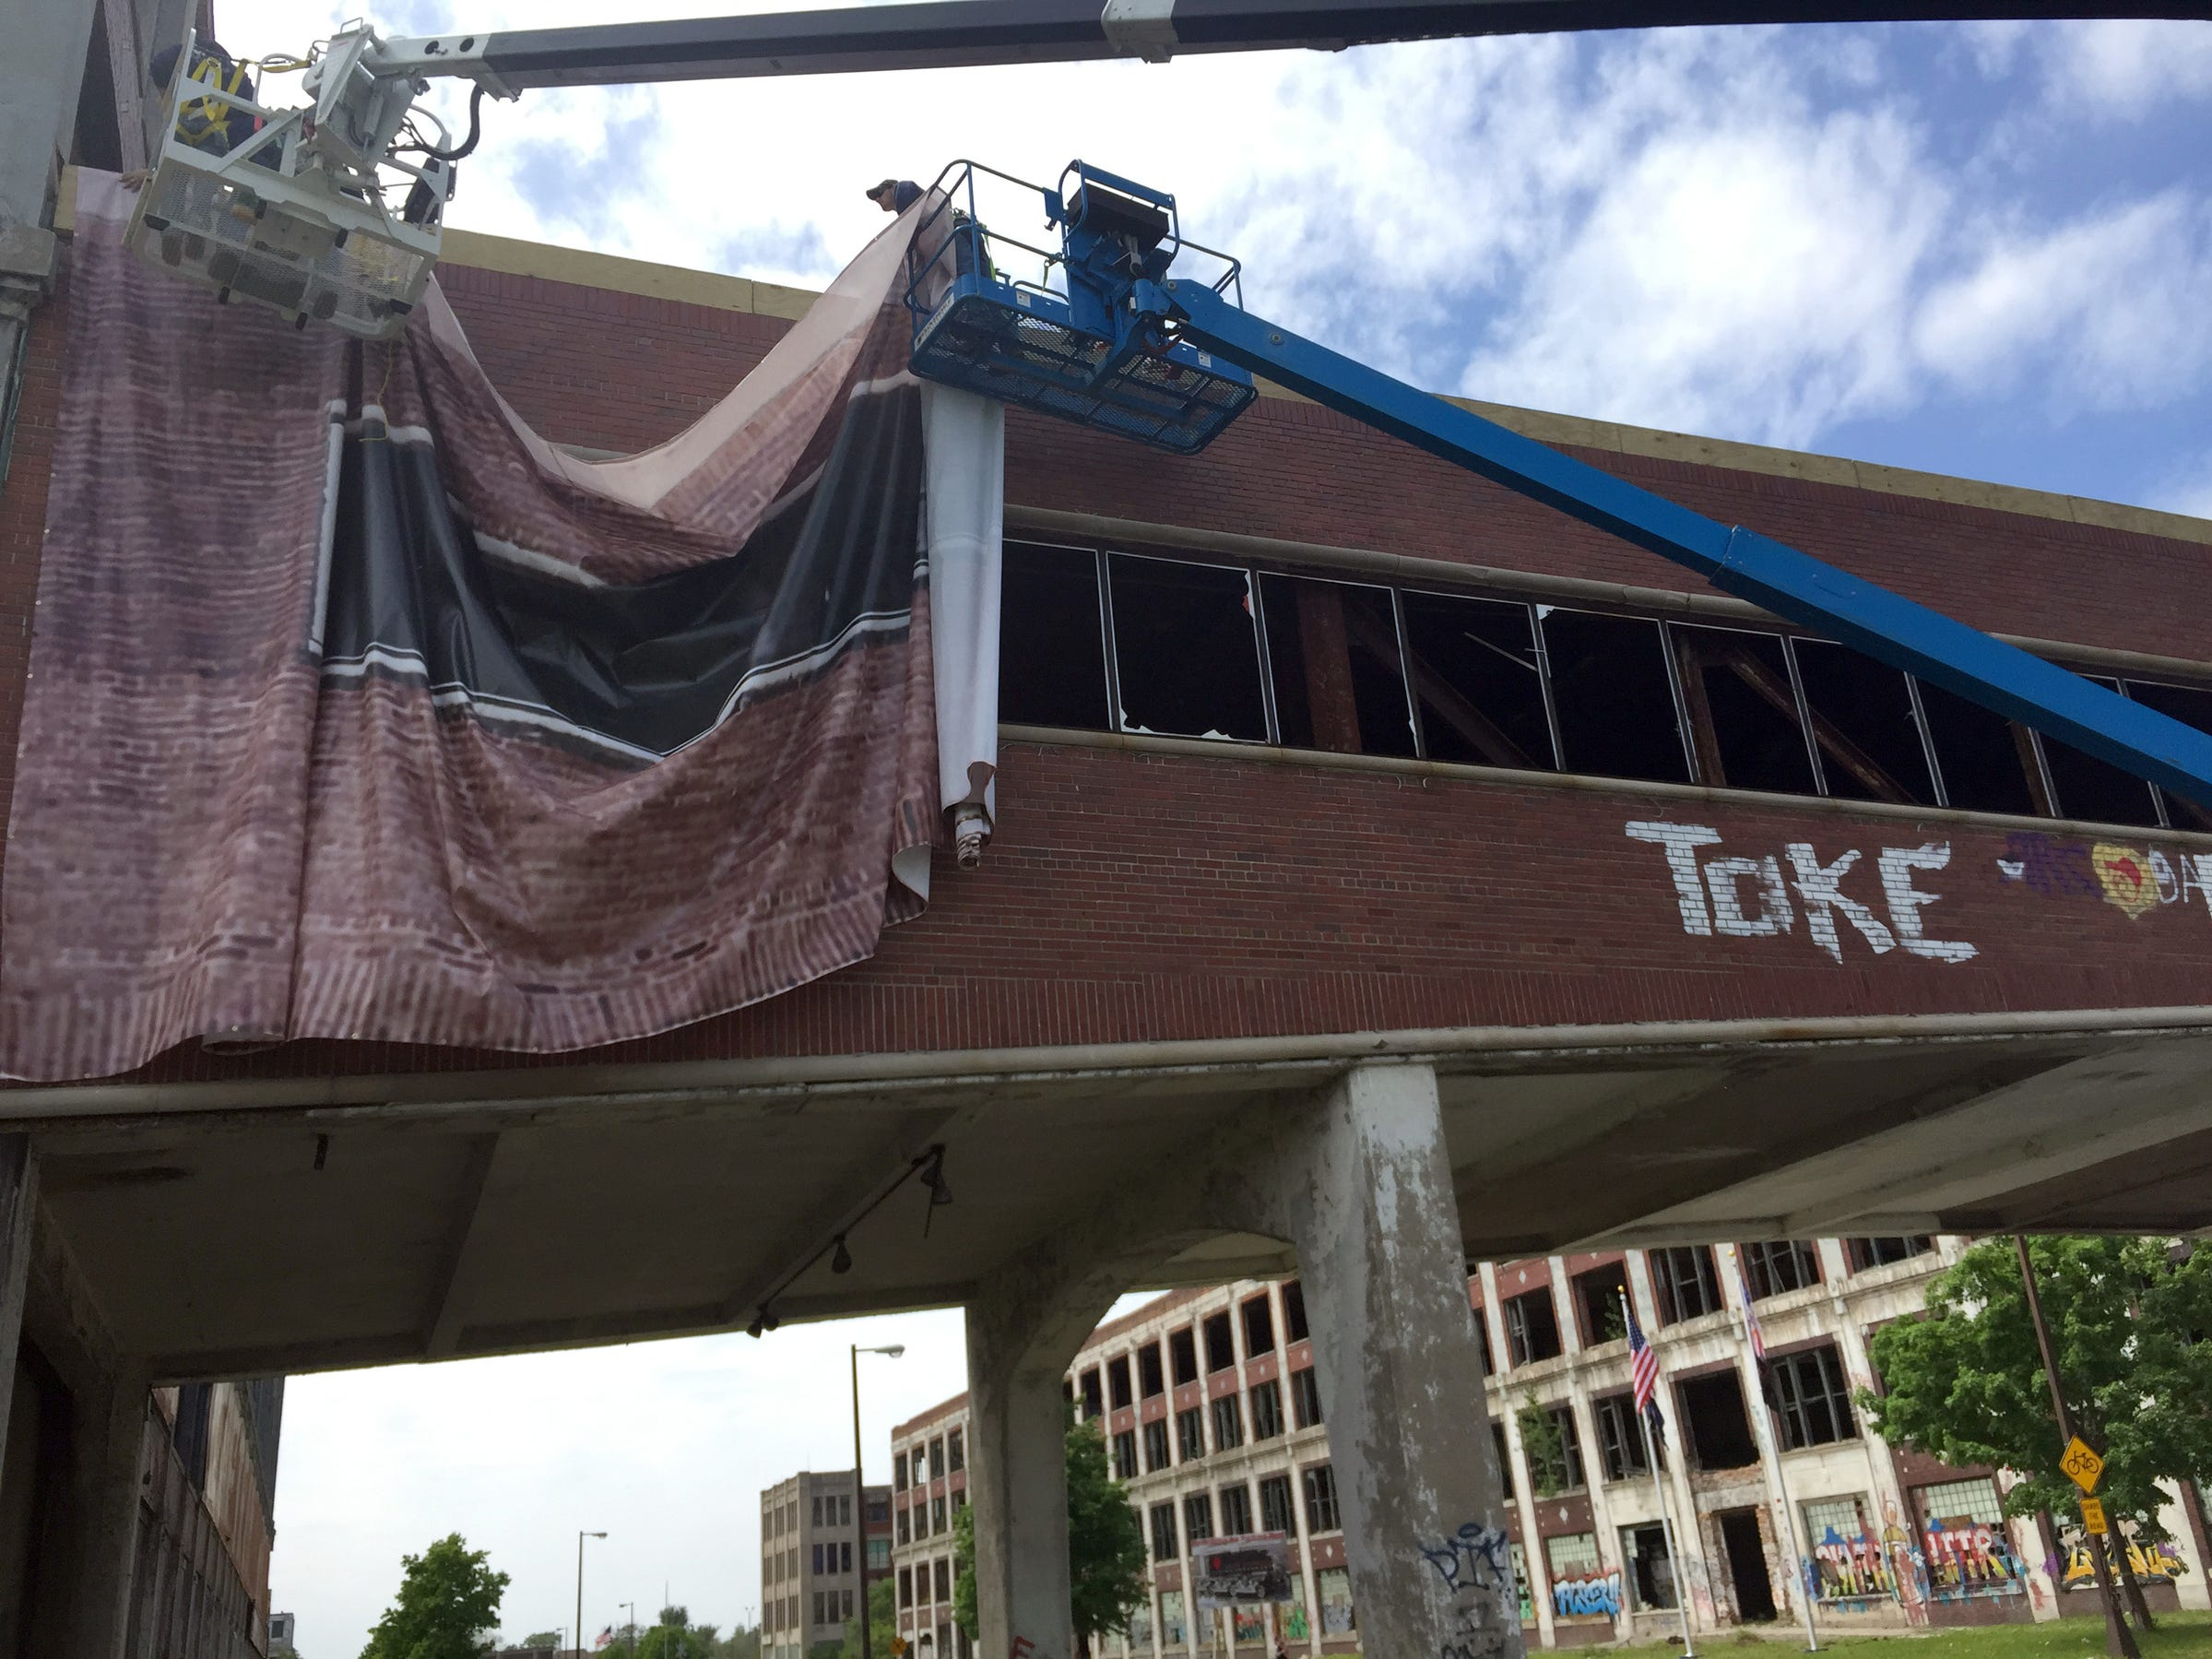 Work crews at the Packard Plant on Thursday draped a graphic covering over both sides of the iconic pedestrian bridge across East Grand Boulevard. The heavy mesh covering depicts the bridge as it looked during its early 20th Century heyday.